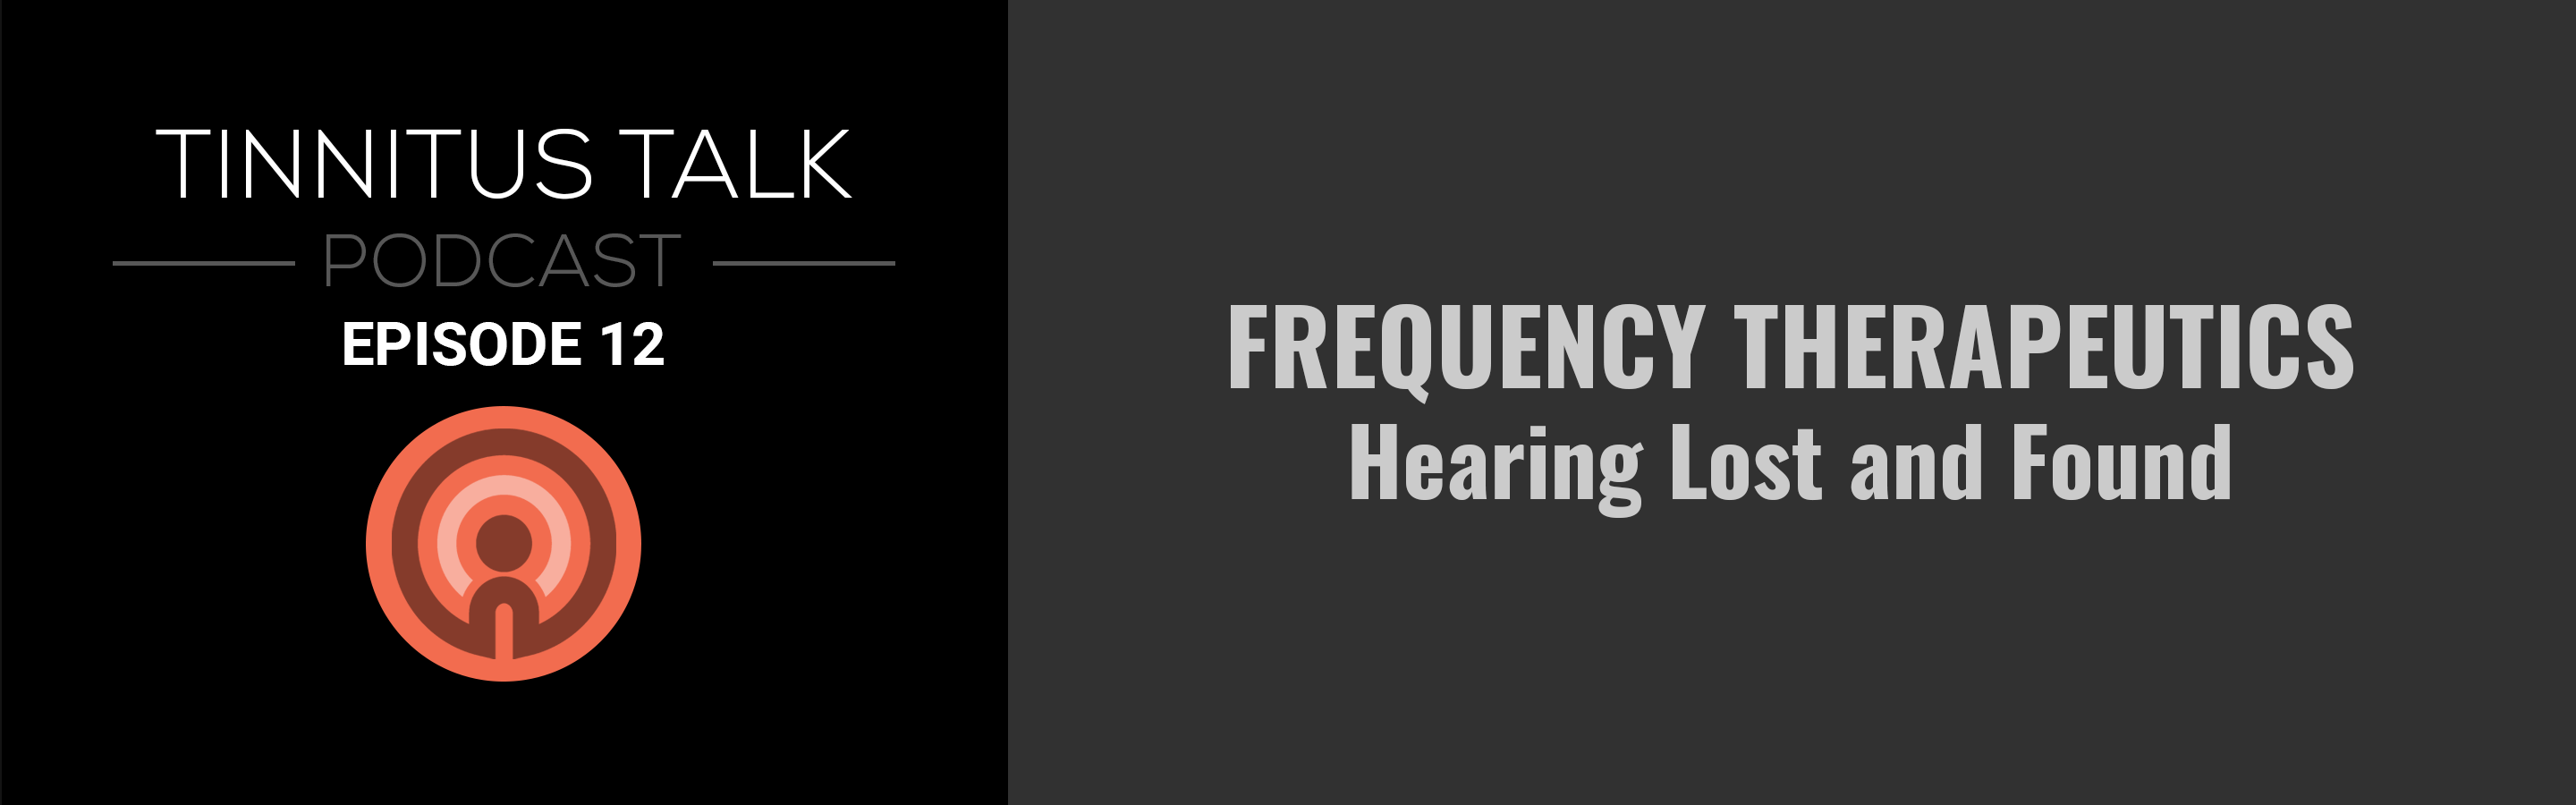 tinnitus-talk-podcast-episode-12-hearing-lost-and-found.png